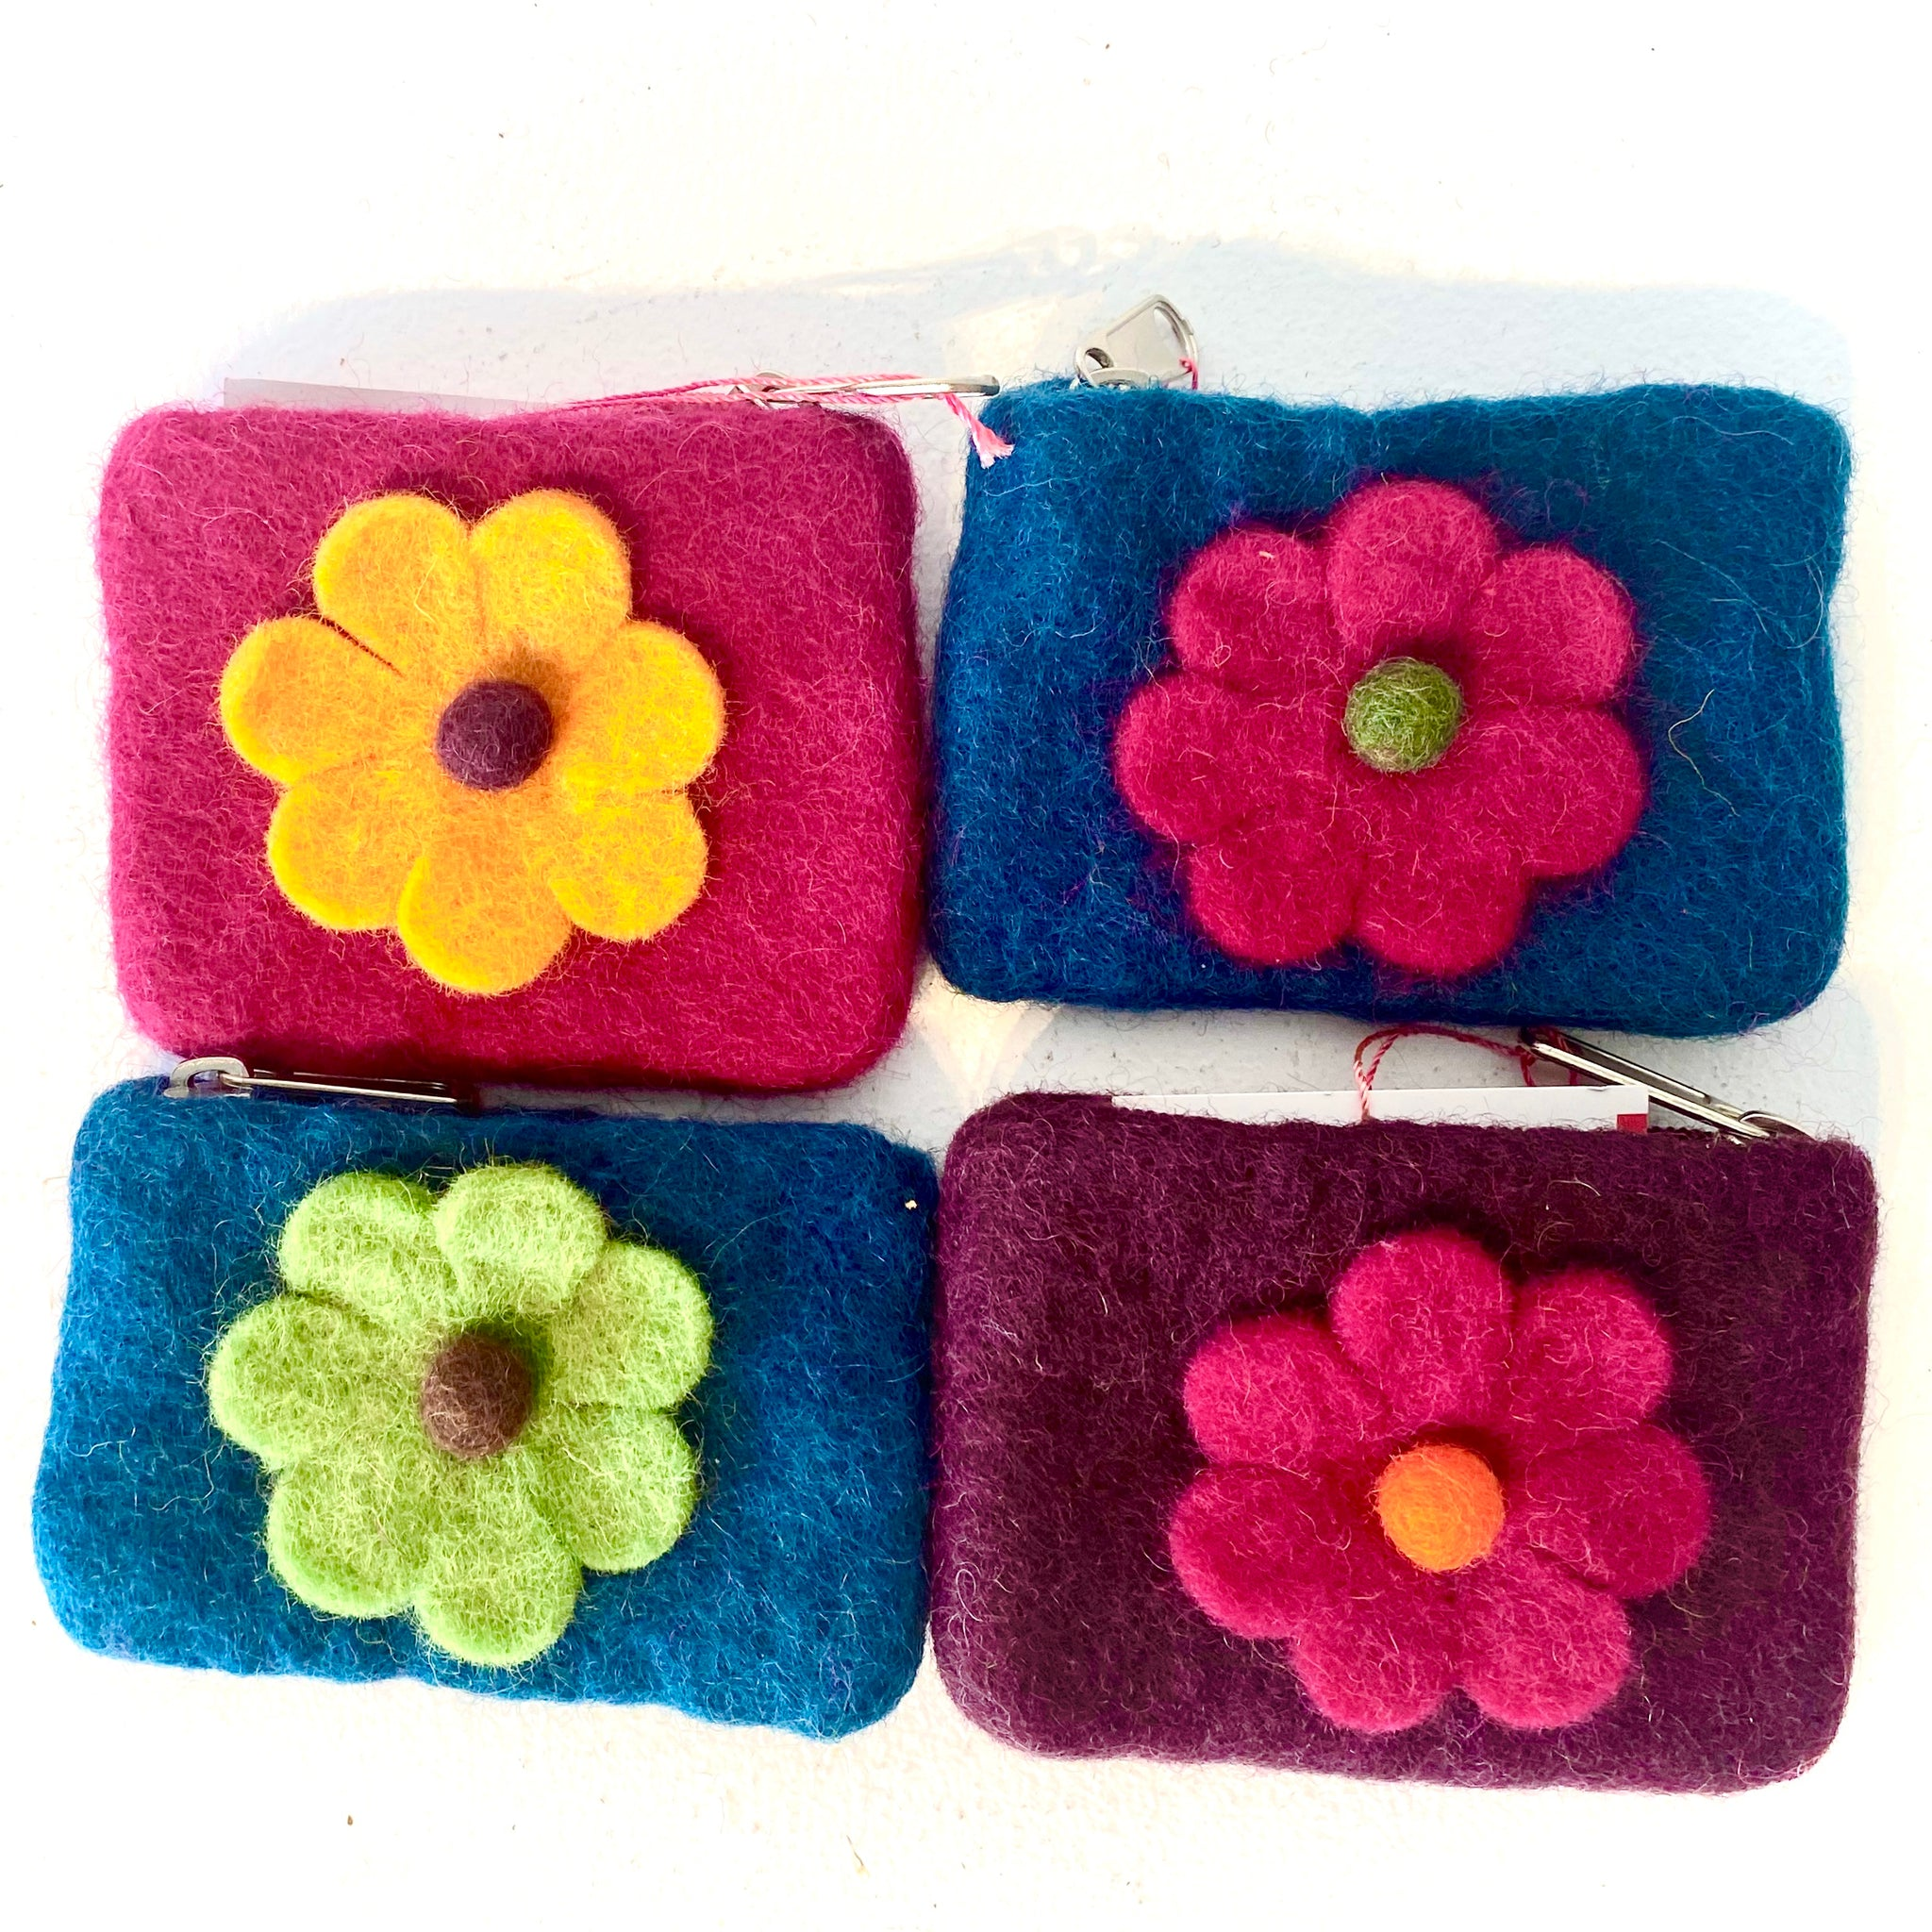 This adorable coin purse was designed and made in Nepal through fair trade. You will love its textured surface and quality lining with an adorable little flower on the front. The colors are: red with yellow flower, blue with pink flower, blue with green flower, and purple with pink flower.